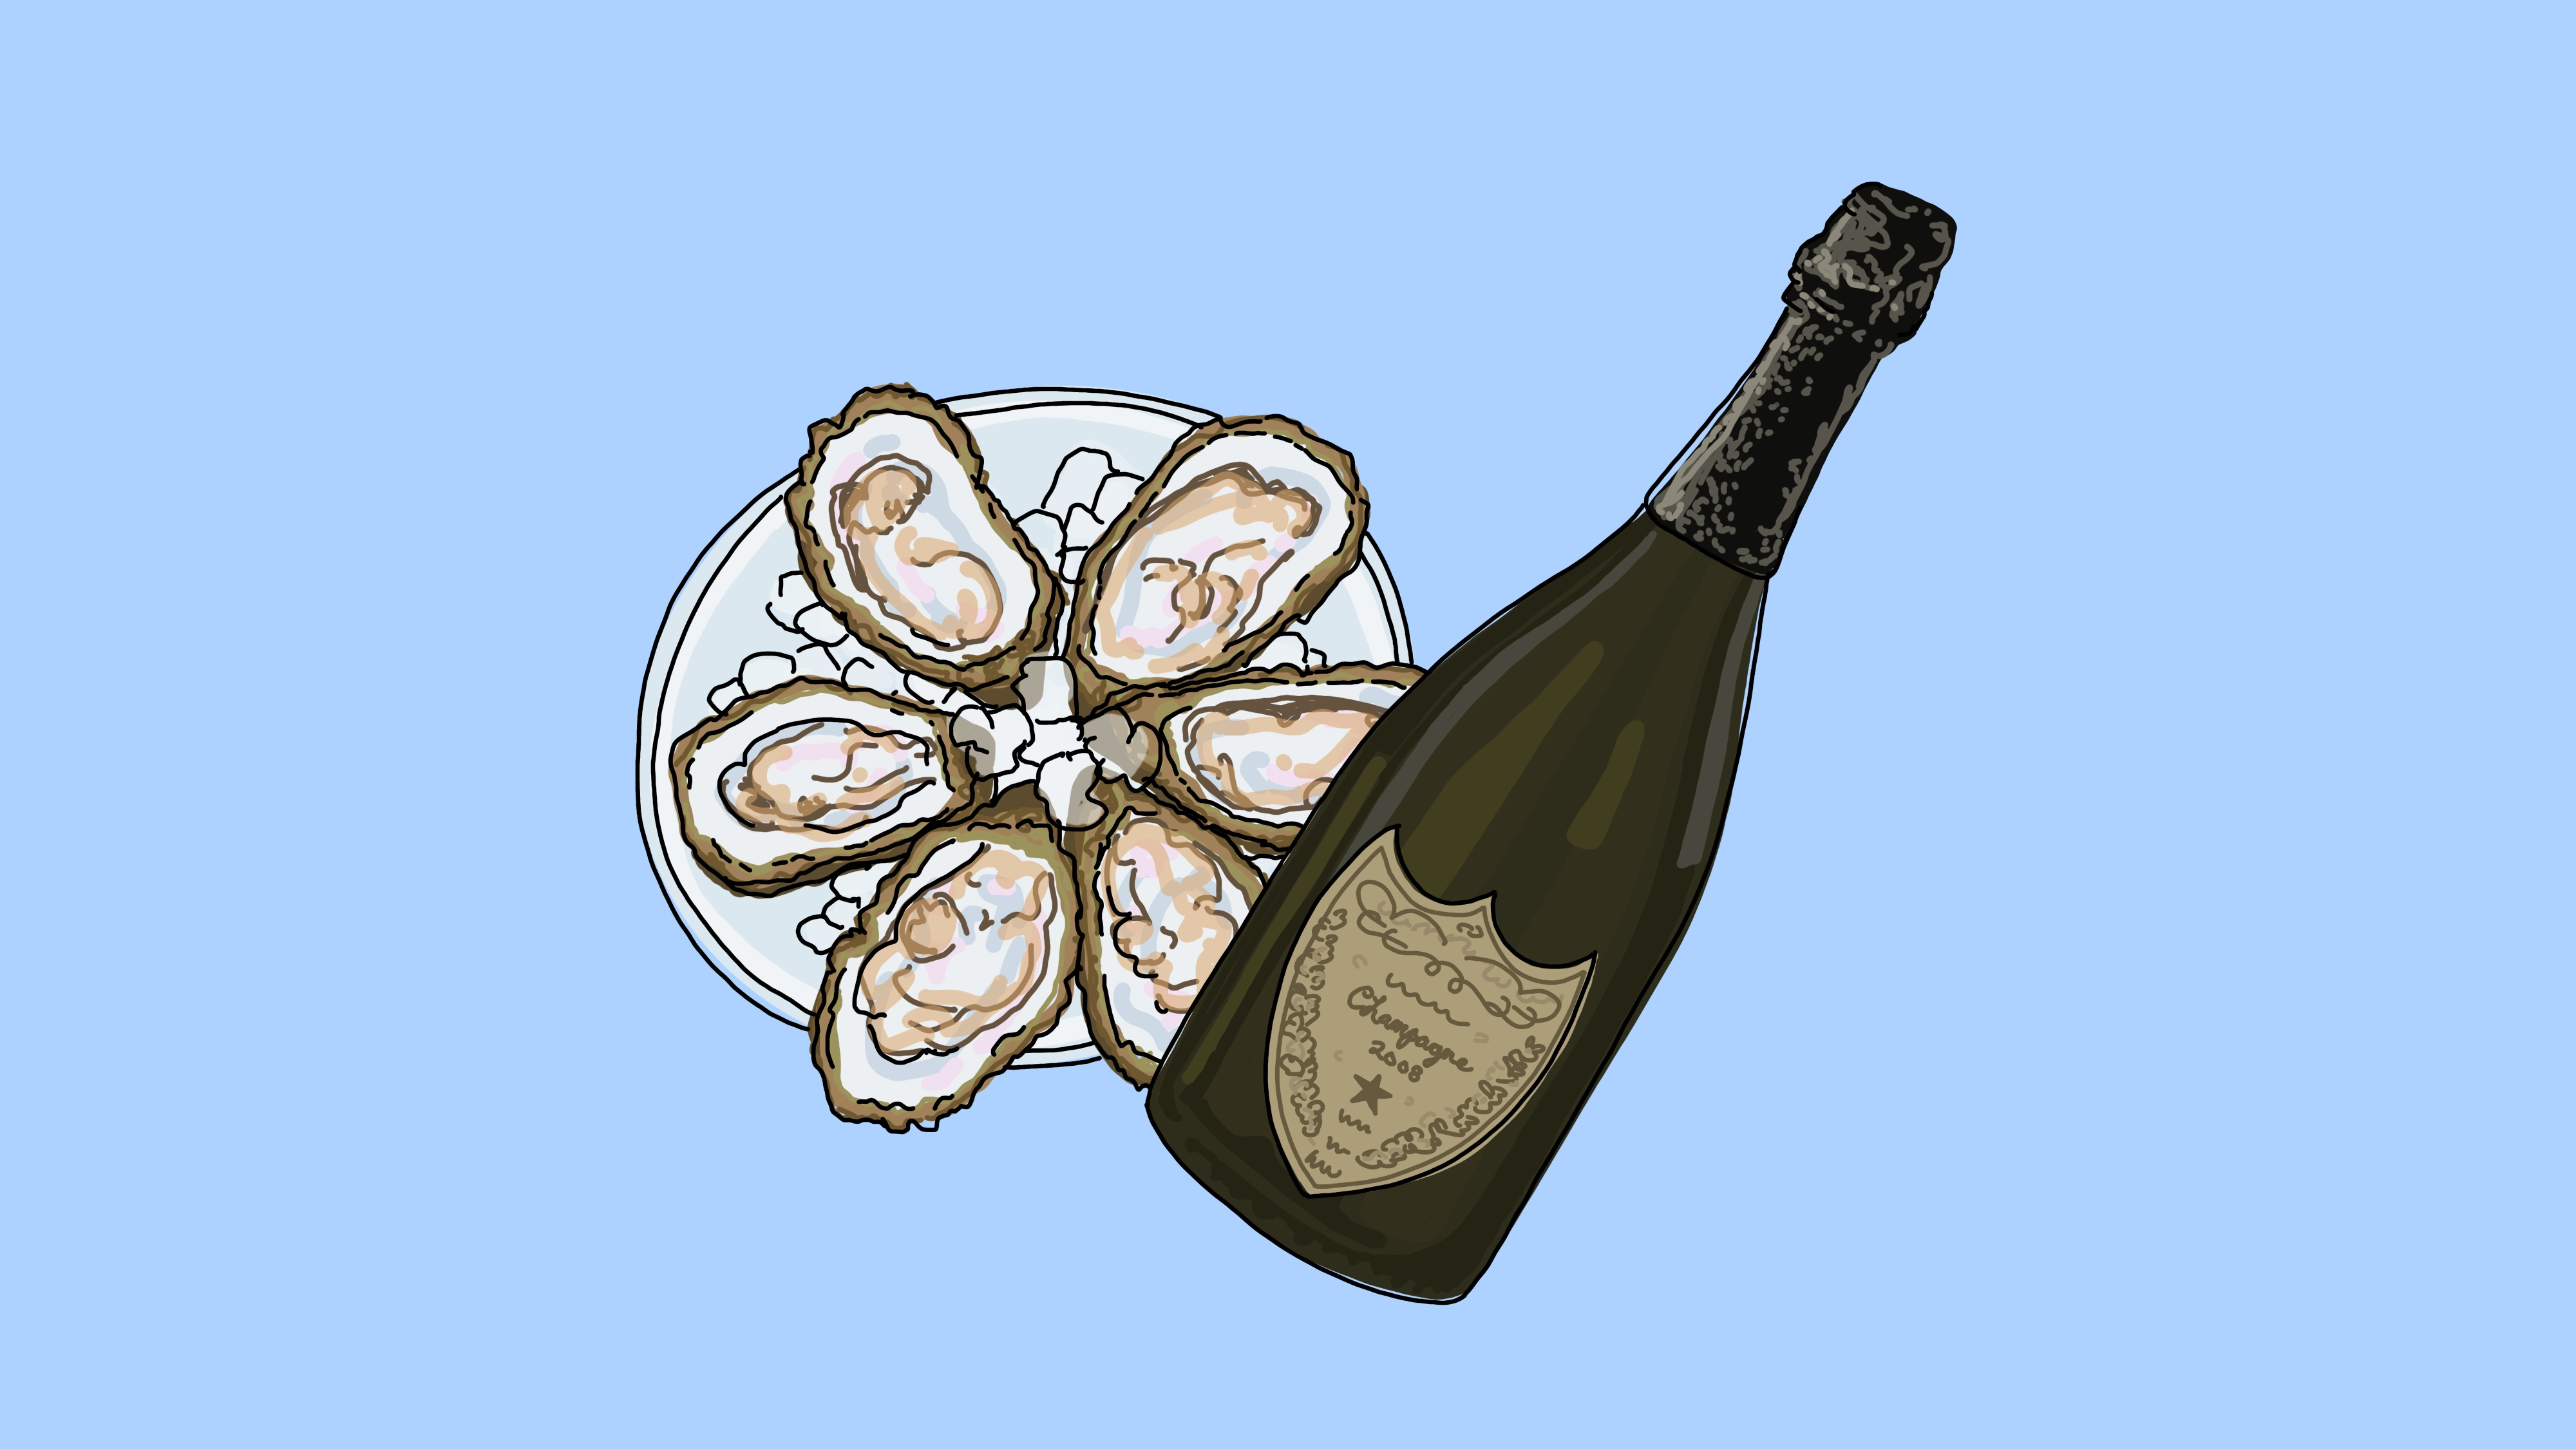 An illustration of a plate of oysters on the half shell and a bottle of Champagne.